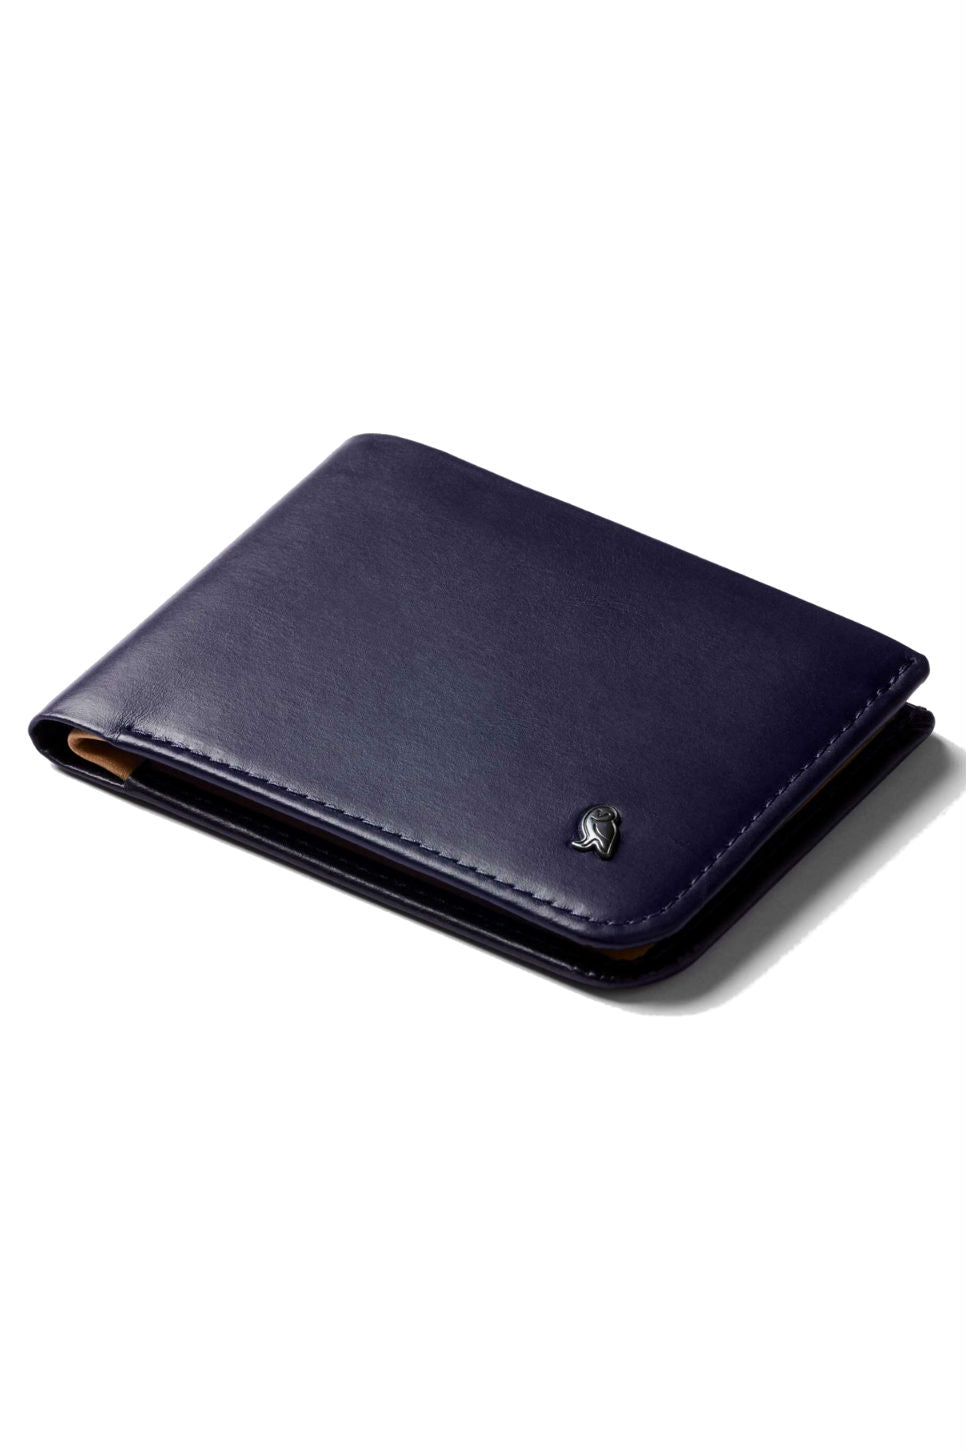 Bellroy - Hide & Seek Wallet - Navy